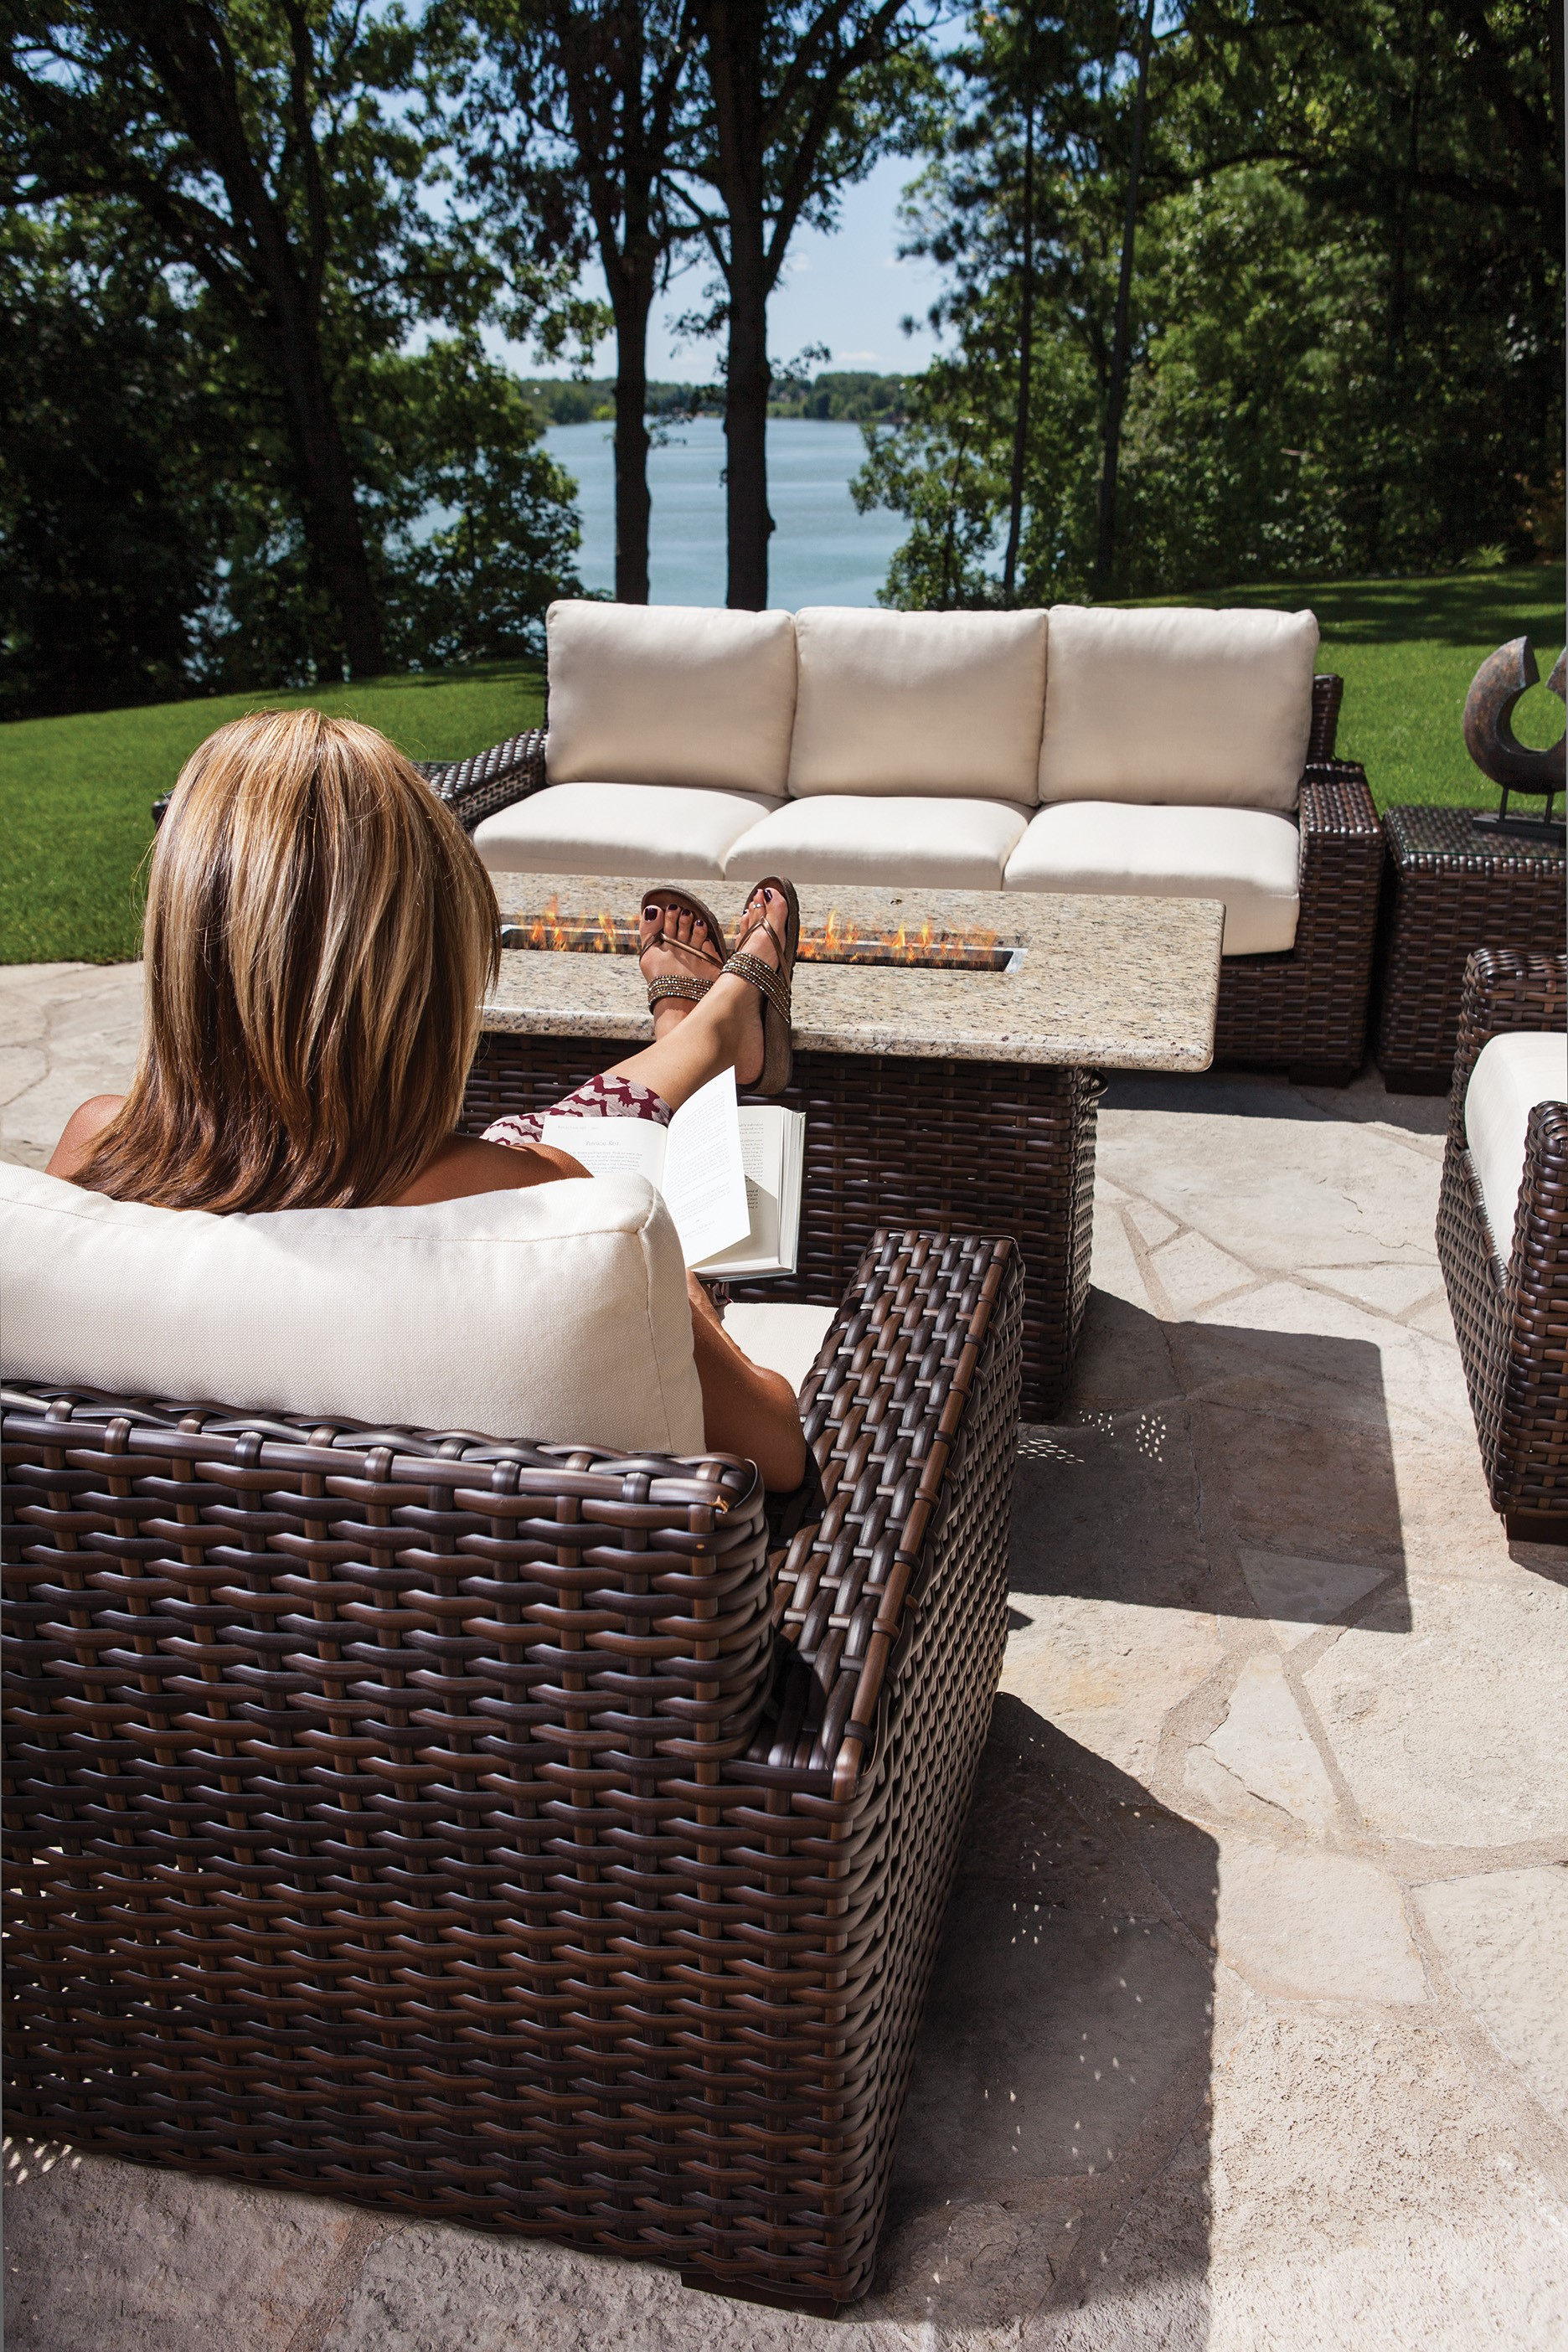 outdoor furniture outdoor living spaces - a woman sitting in a patio chair reading a book